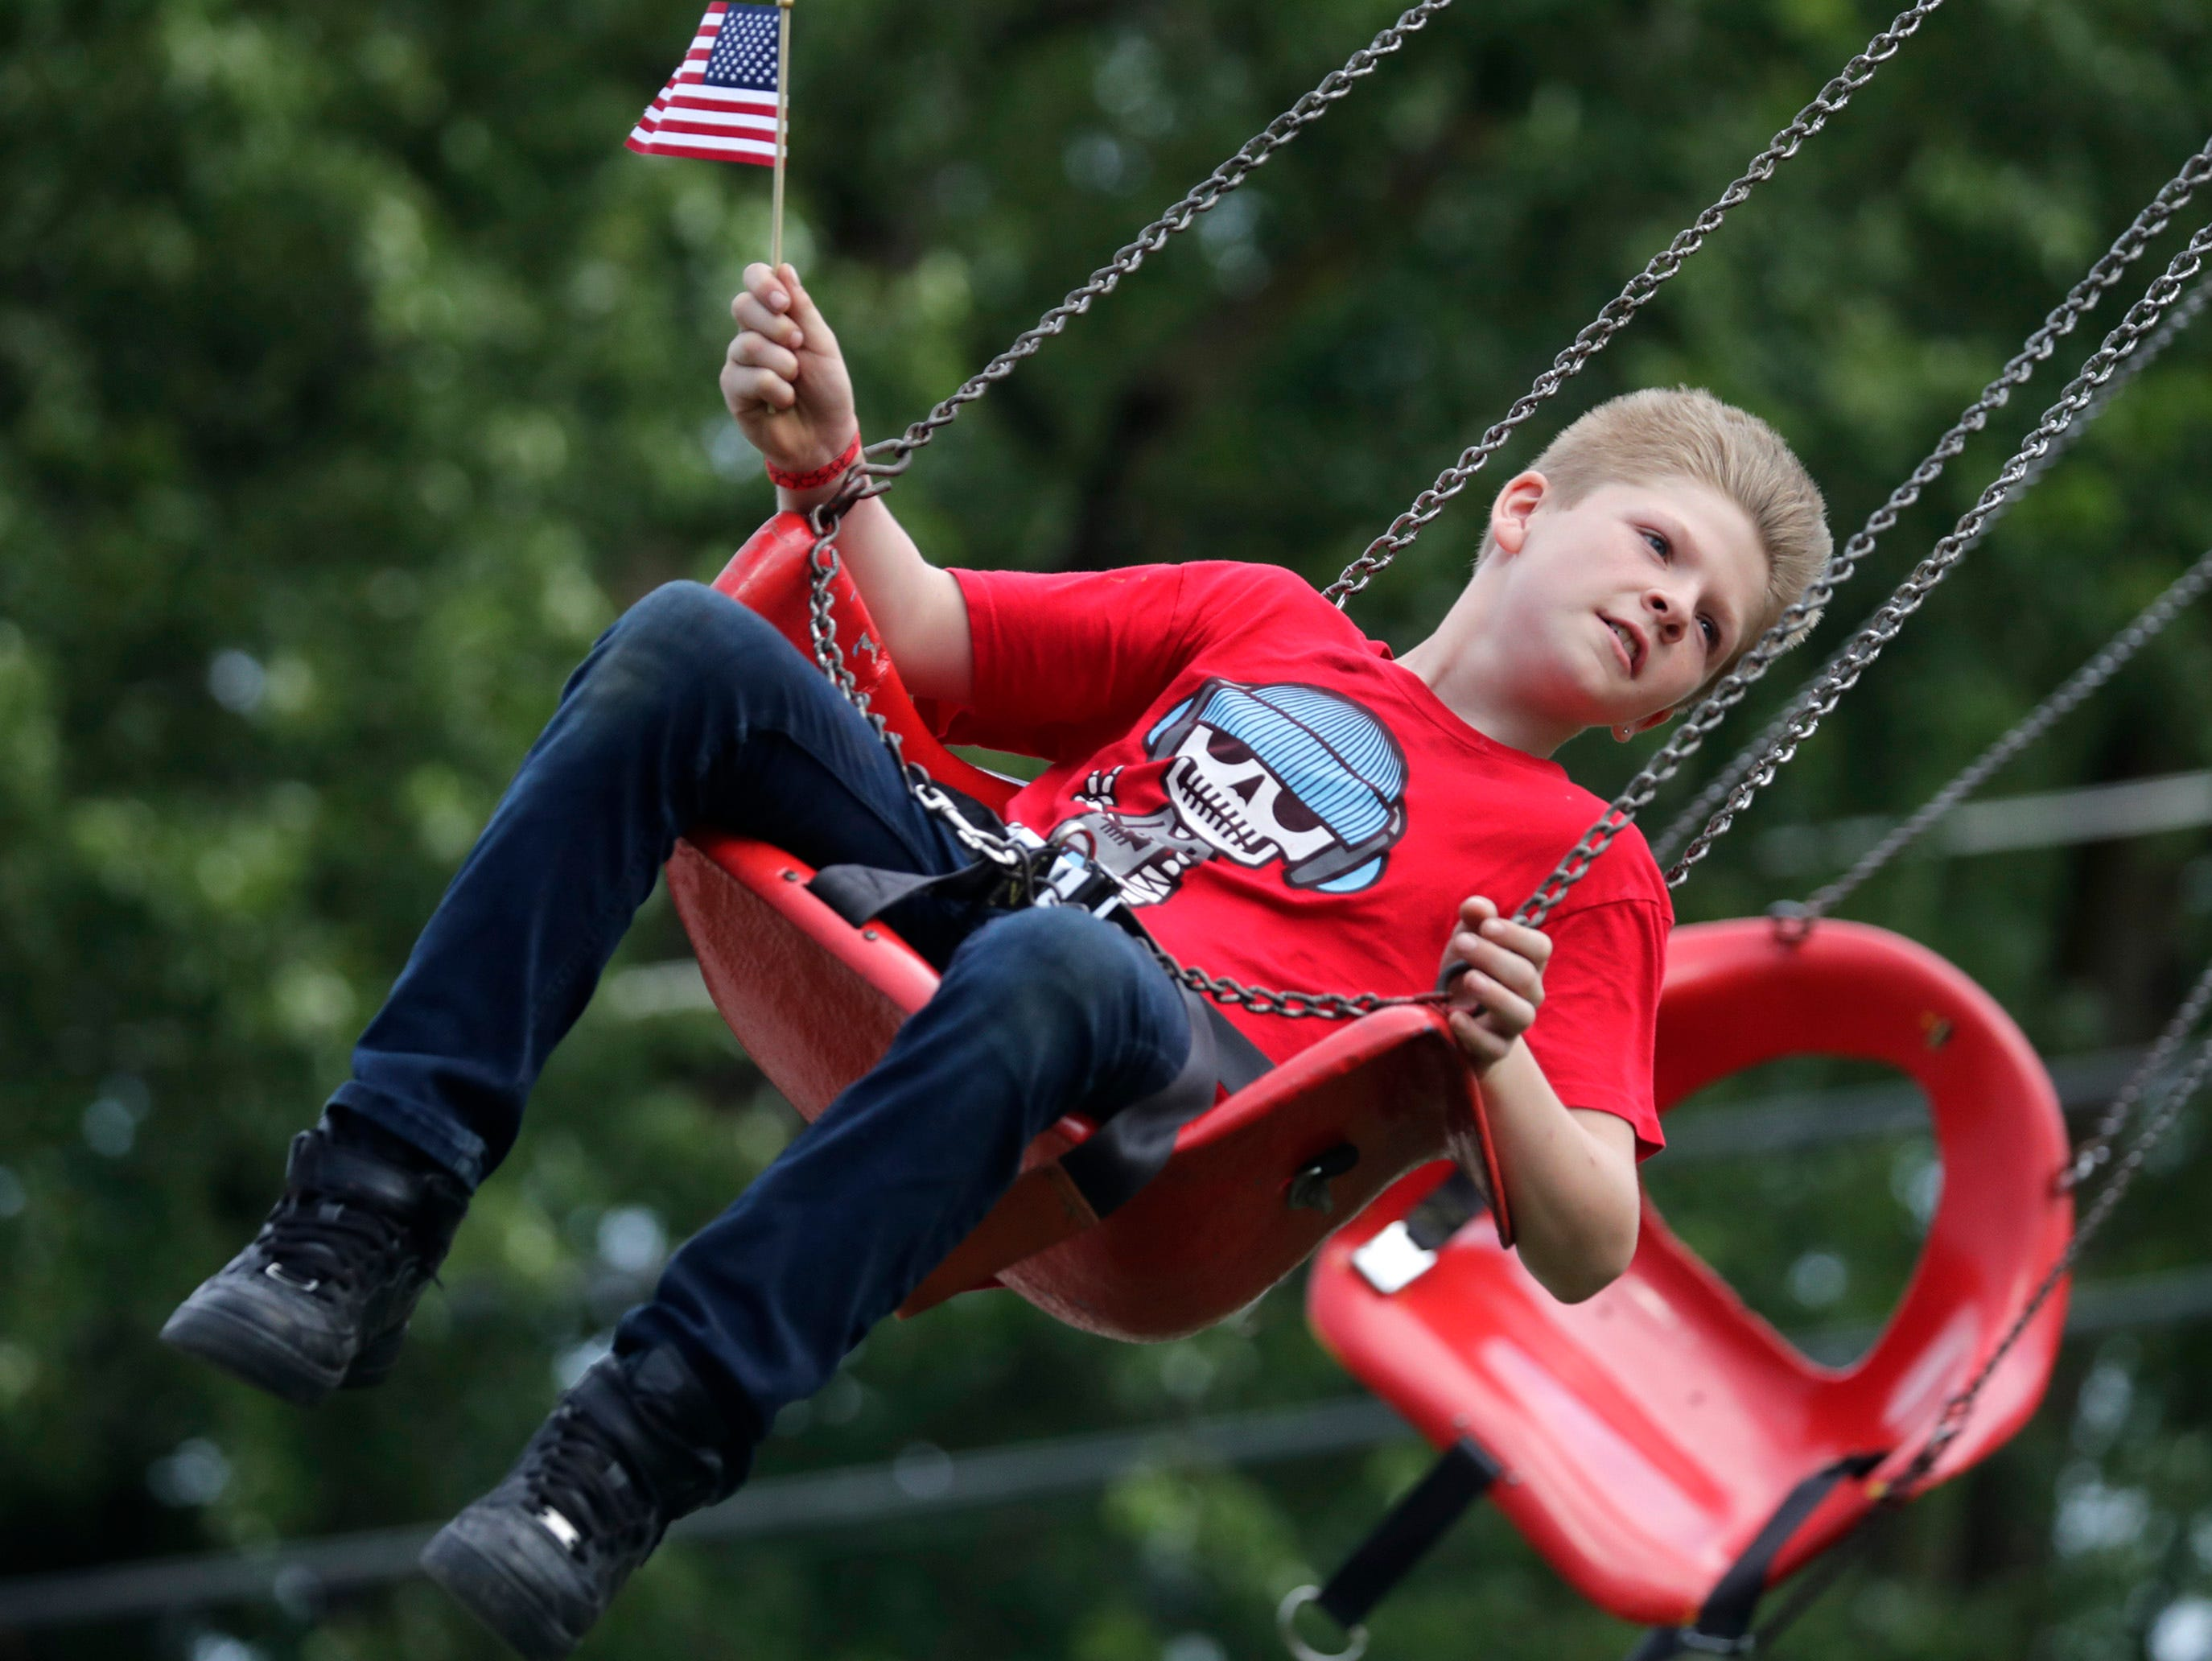 Cameron Baenen, Shiocton, during the Outagamie County Fair on Wednesday, July 25, 2018 in Seymour, Wis. 